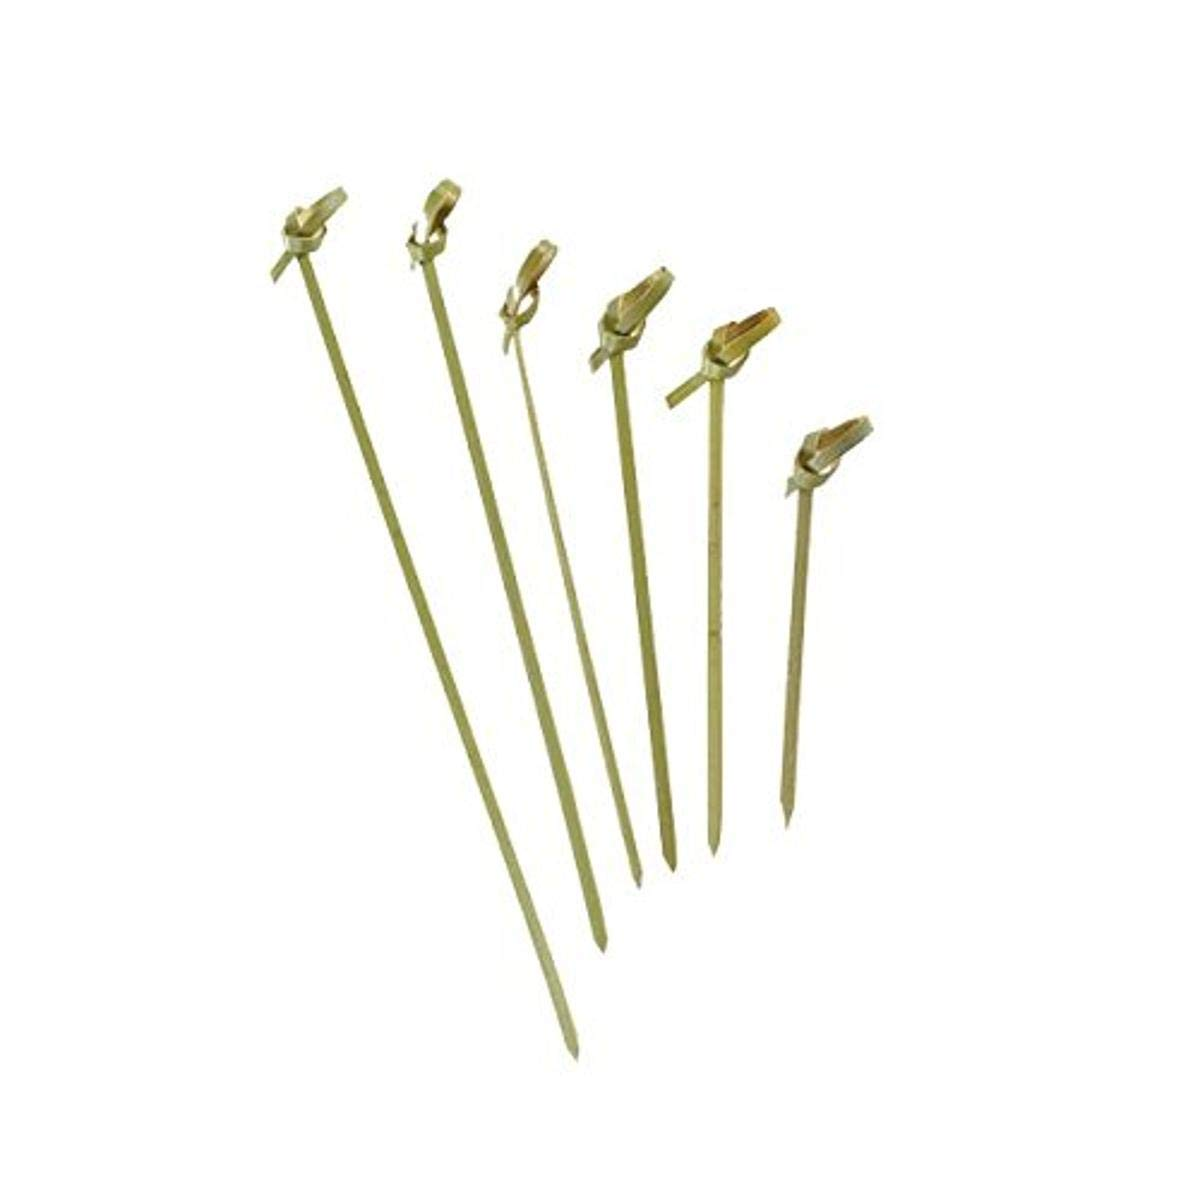 Bamboo Knot Pick Looped Skewer (Case of 100), PacknWood - Biodegradable Wood Sticks for Appetizers, Drinks (4.7